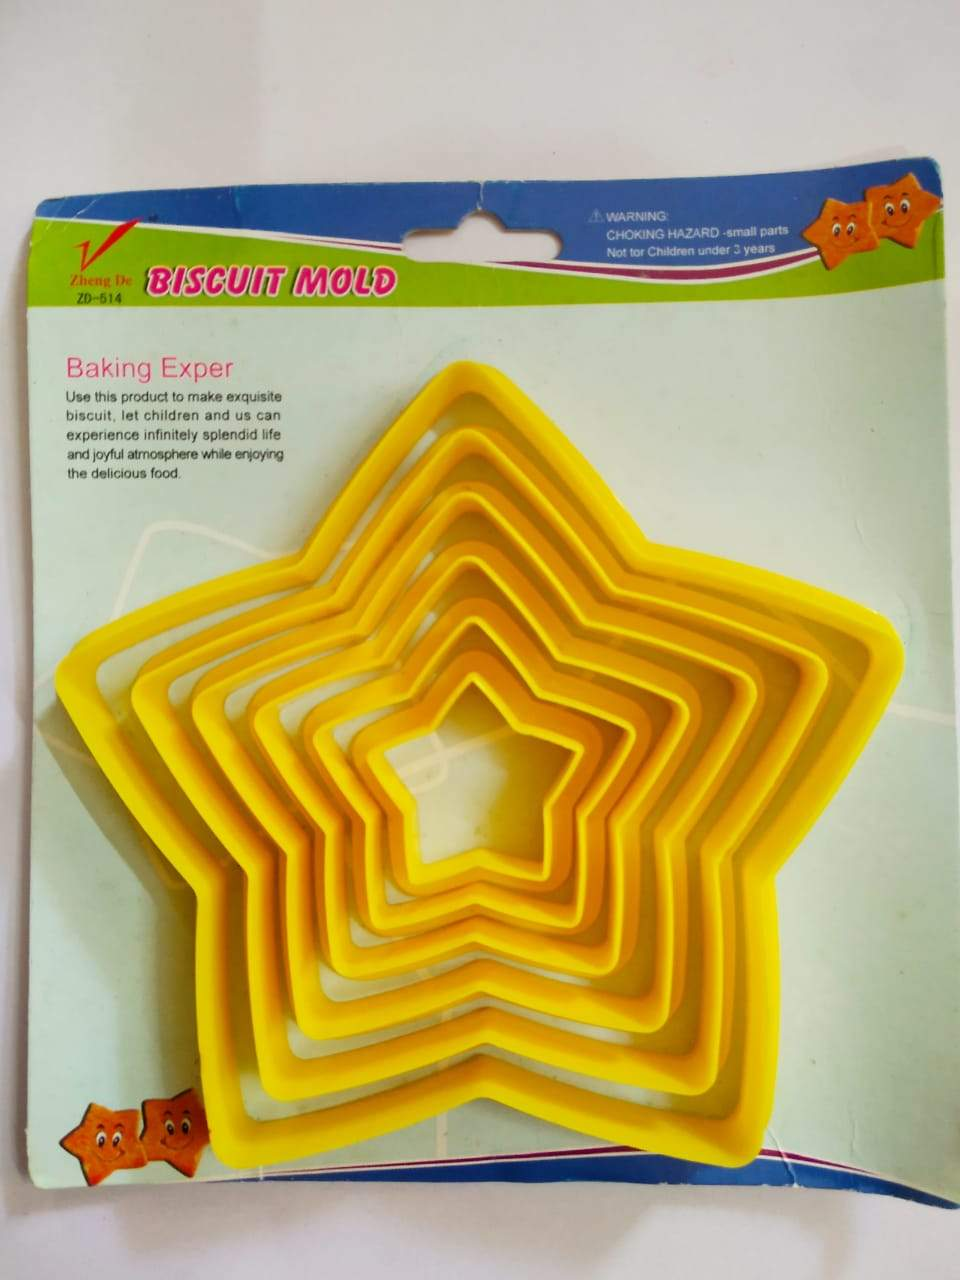 Star Shape Cookie Cutters Mcirco Plastic Cutter Set -Shaped Biscuit Multi-Size Shapes For Kids